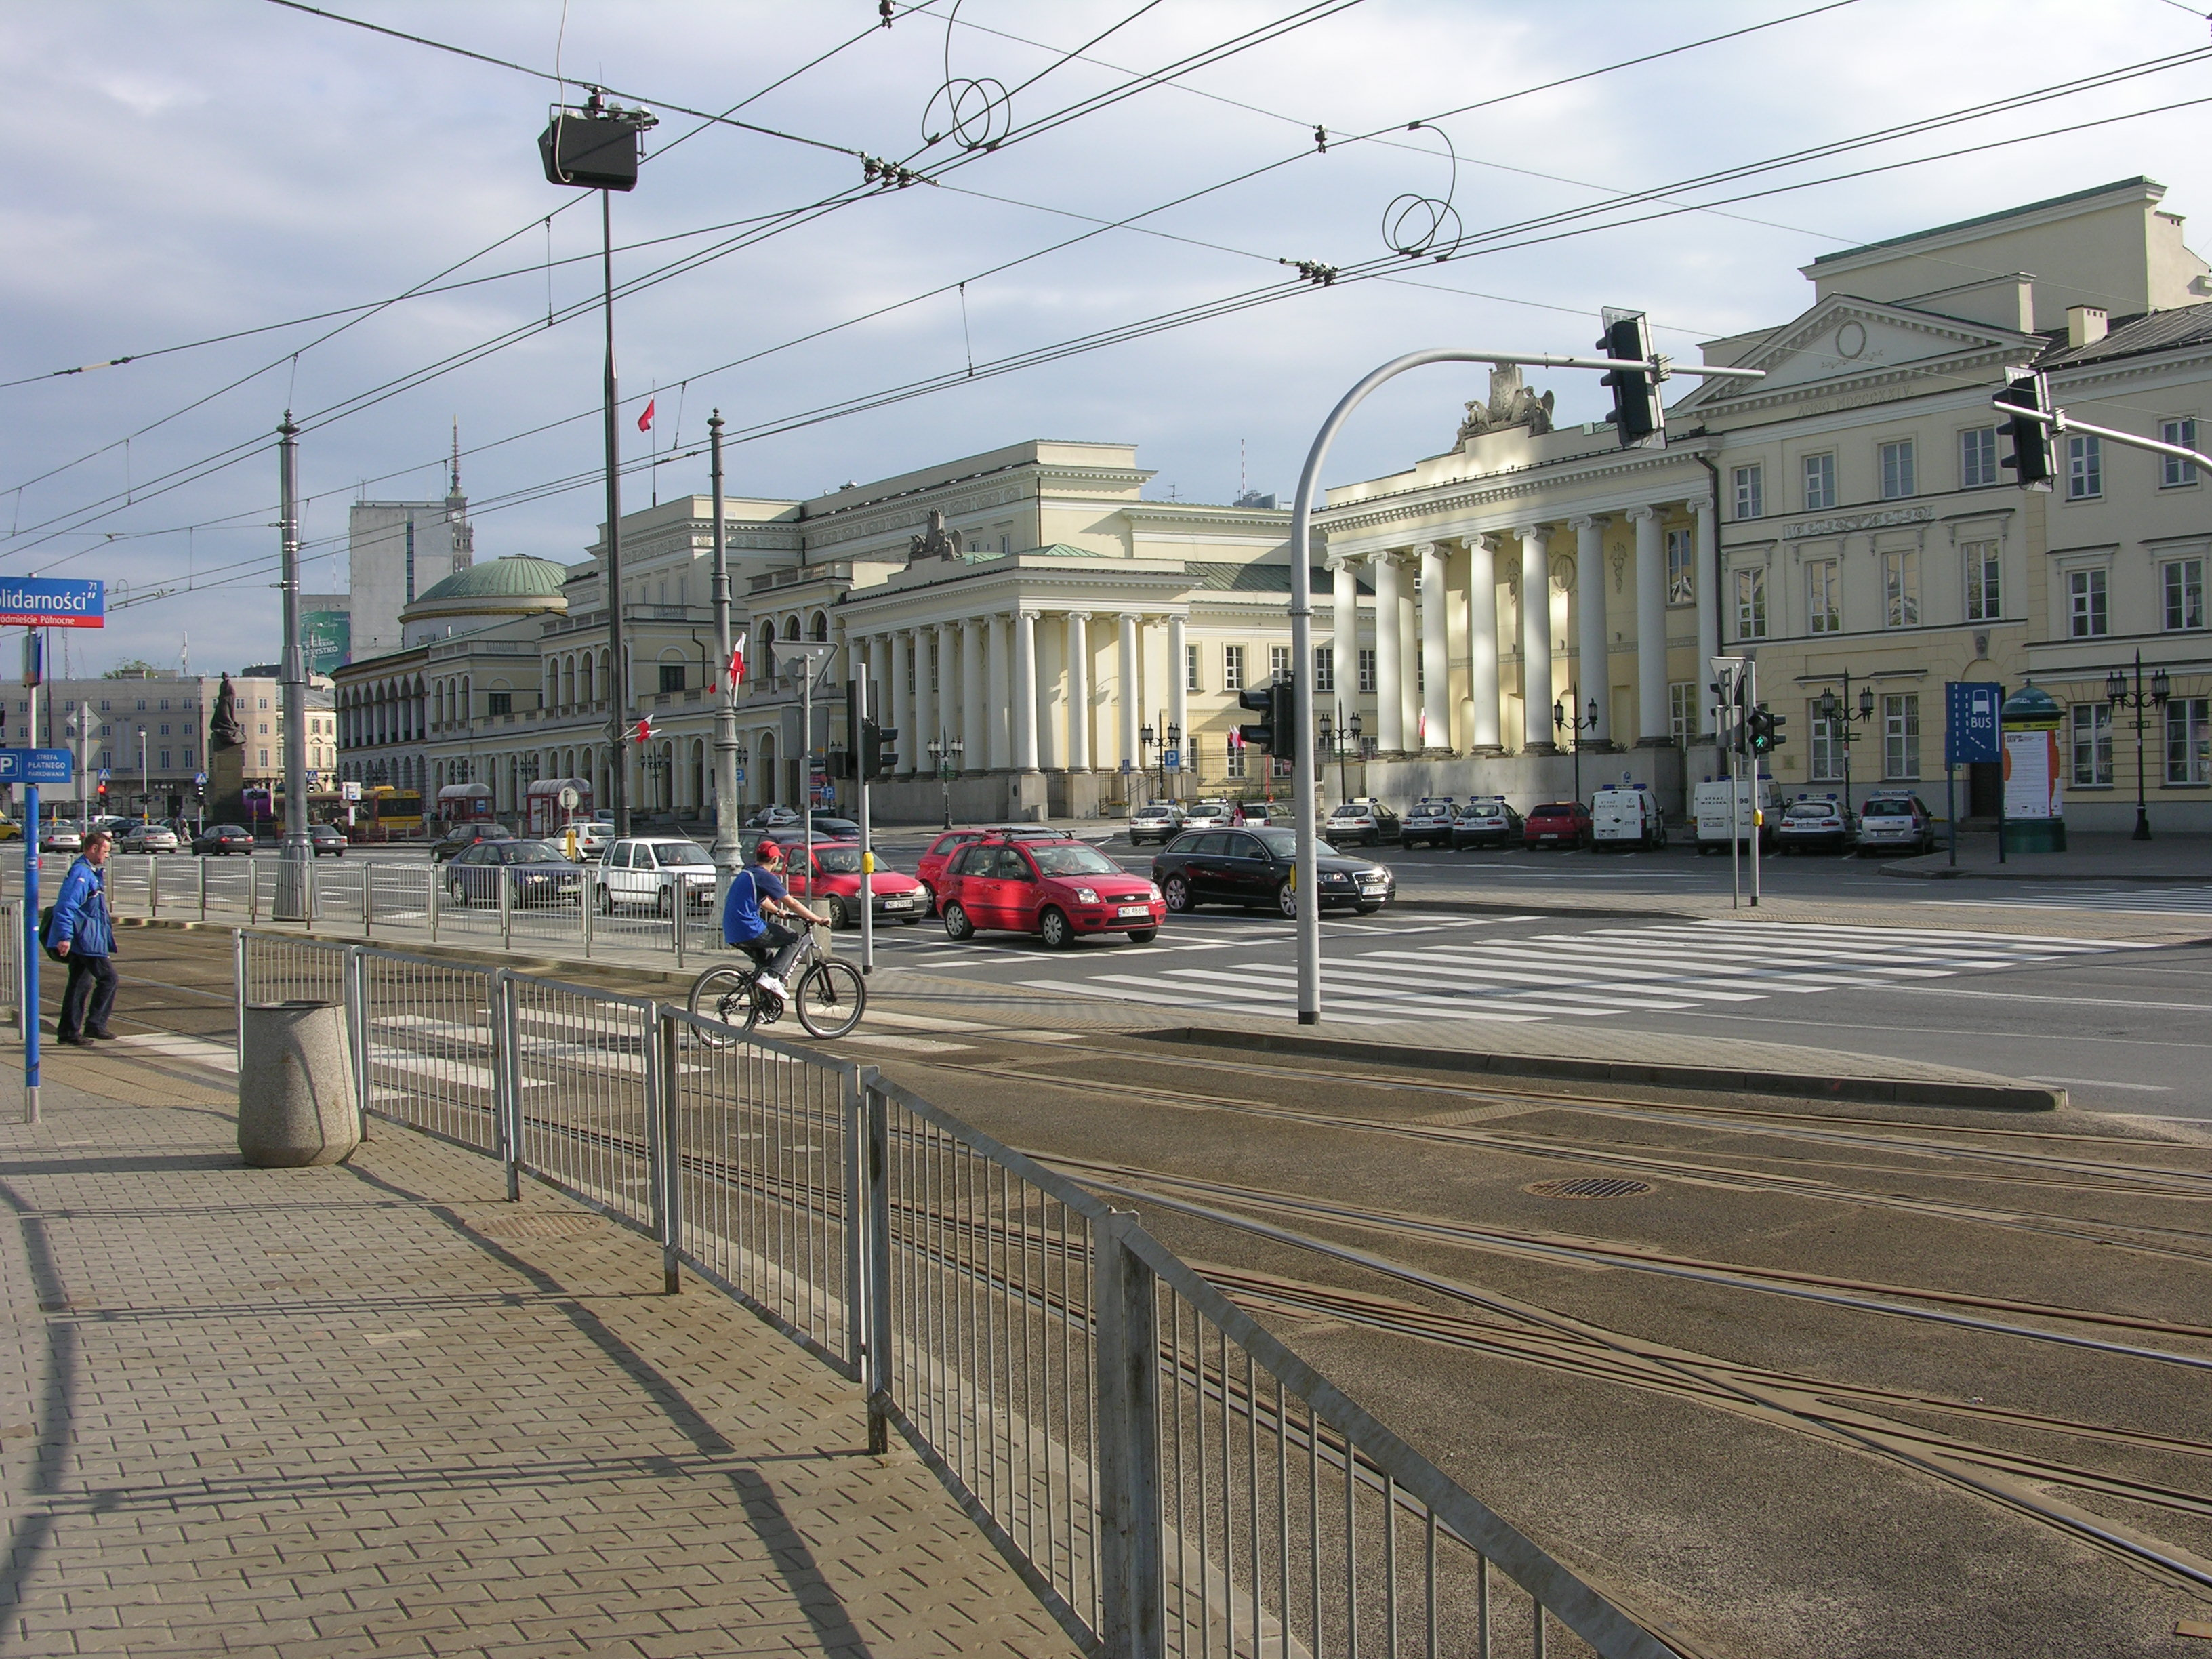 Plac Bankowy